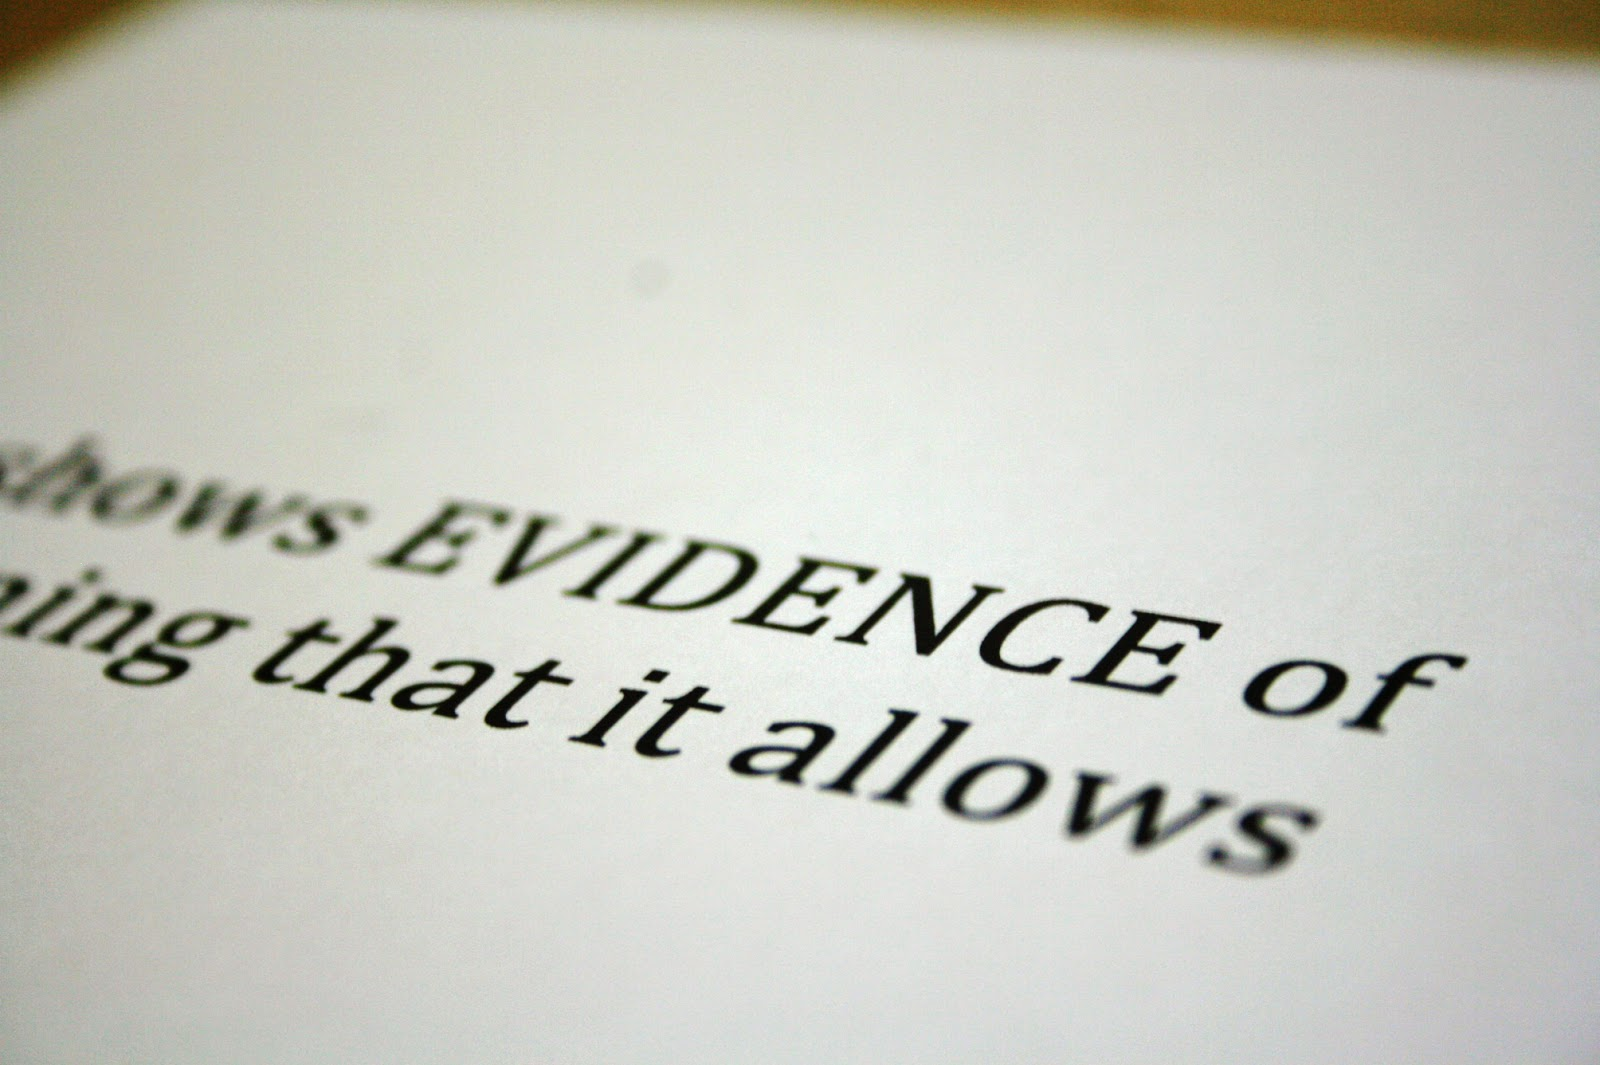 what is the meaning of the word evidence